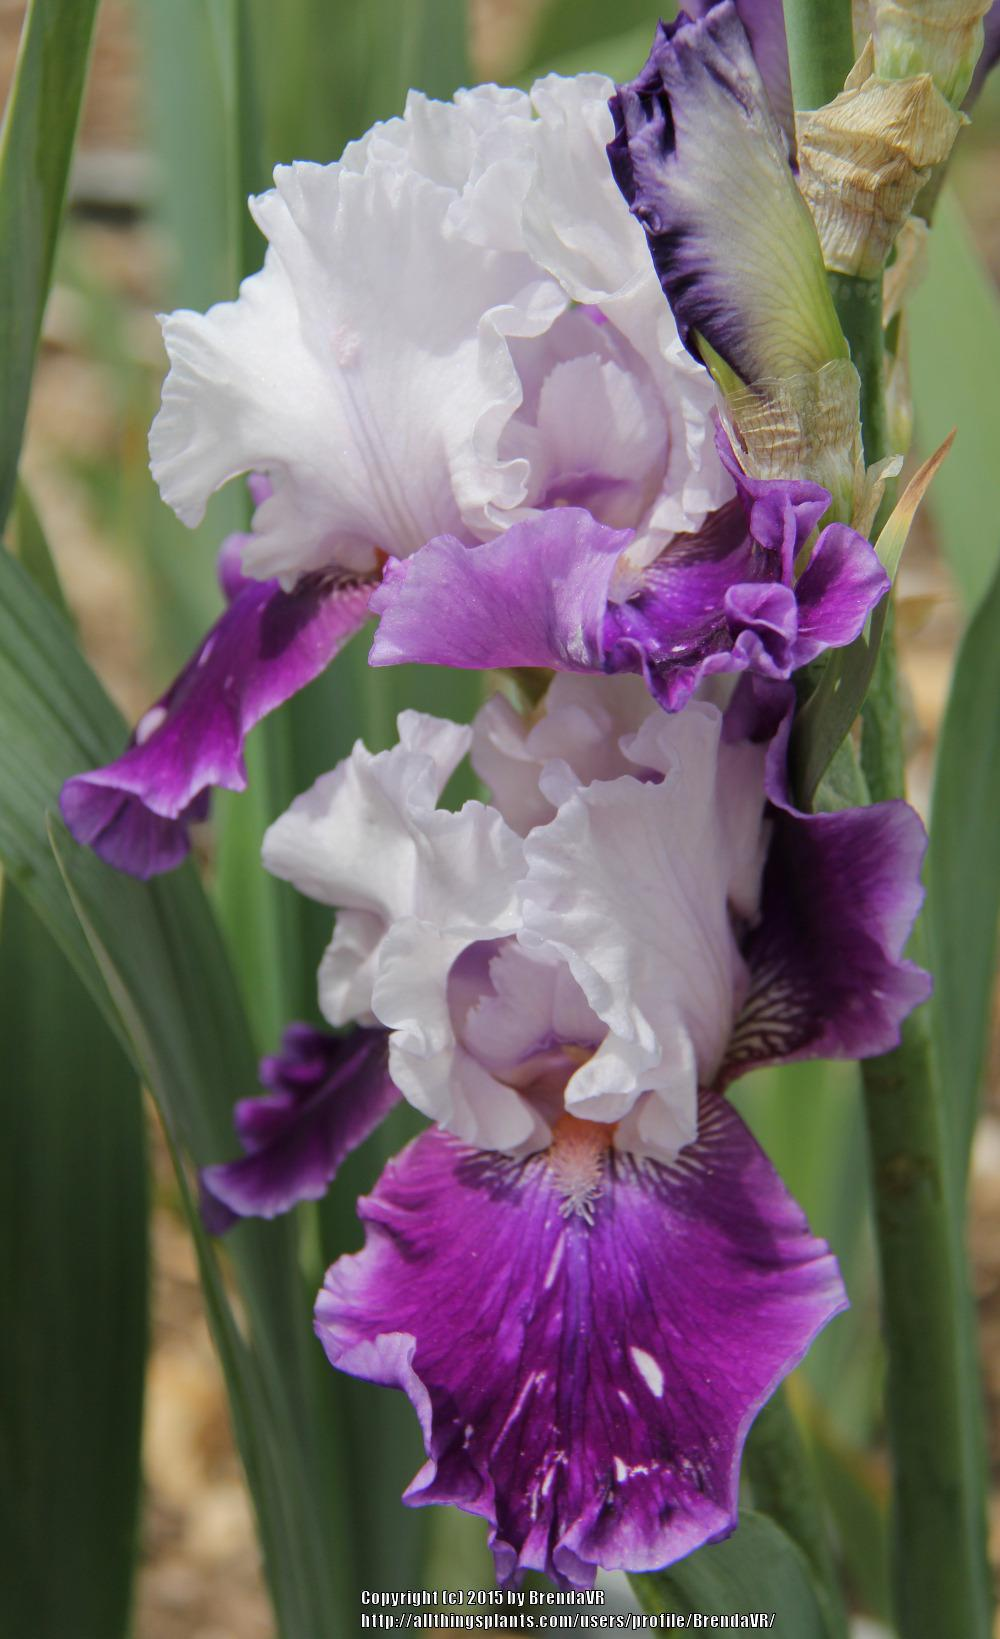 Photo of Tall Bearded Iris (Iris 'Hold and Behold') uploaded by BrendaVR